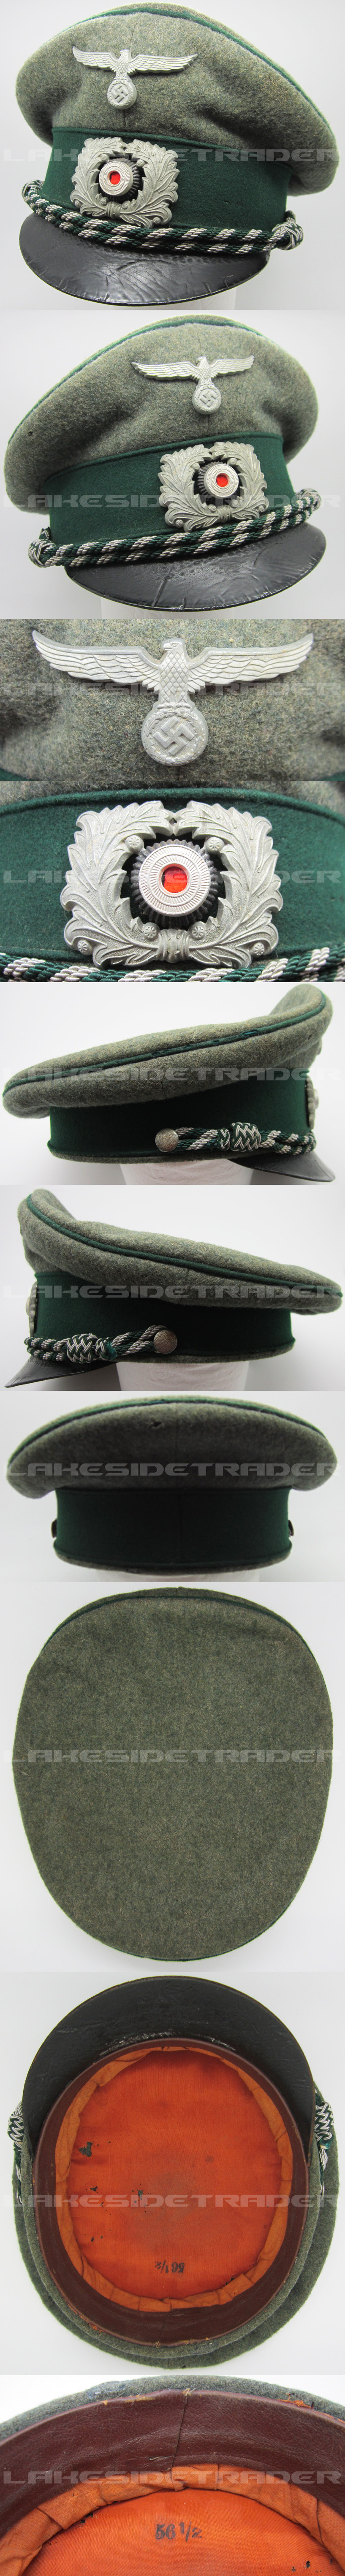 Customs Officers Visor Cap